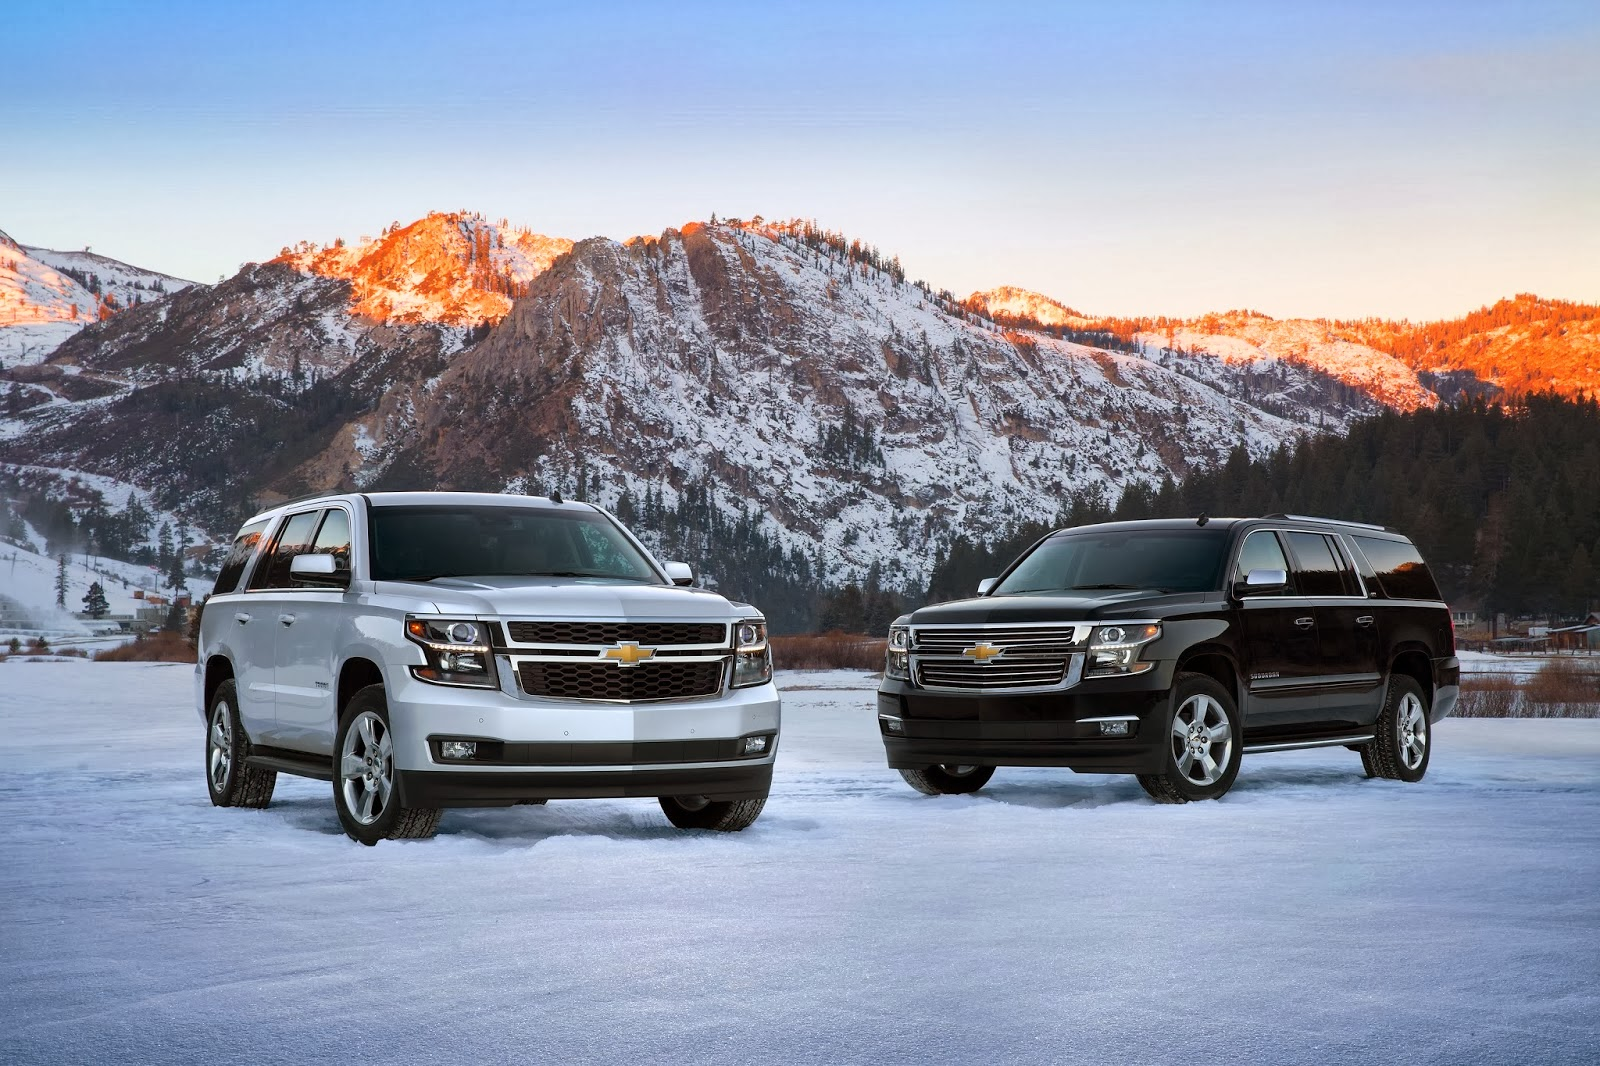 2015 Chevrolet and GMC SUVs Offer Better Gas Mileage